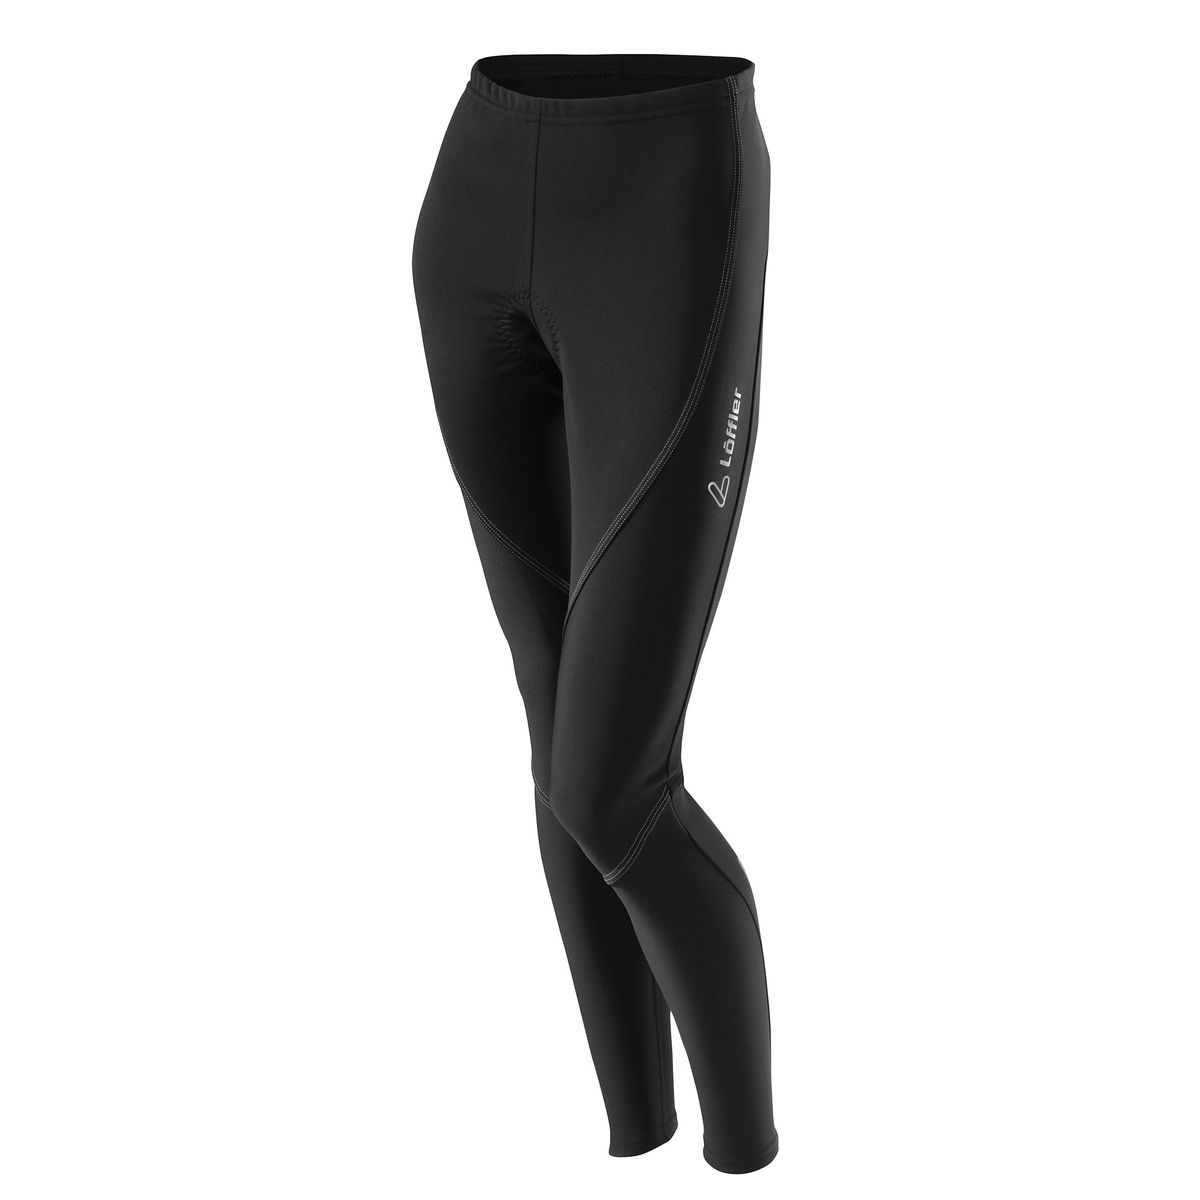 SOFTSHELL WARM women's thermal tights